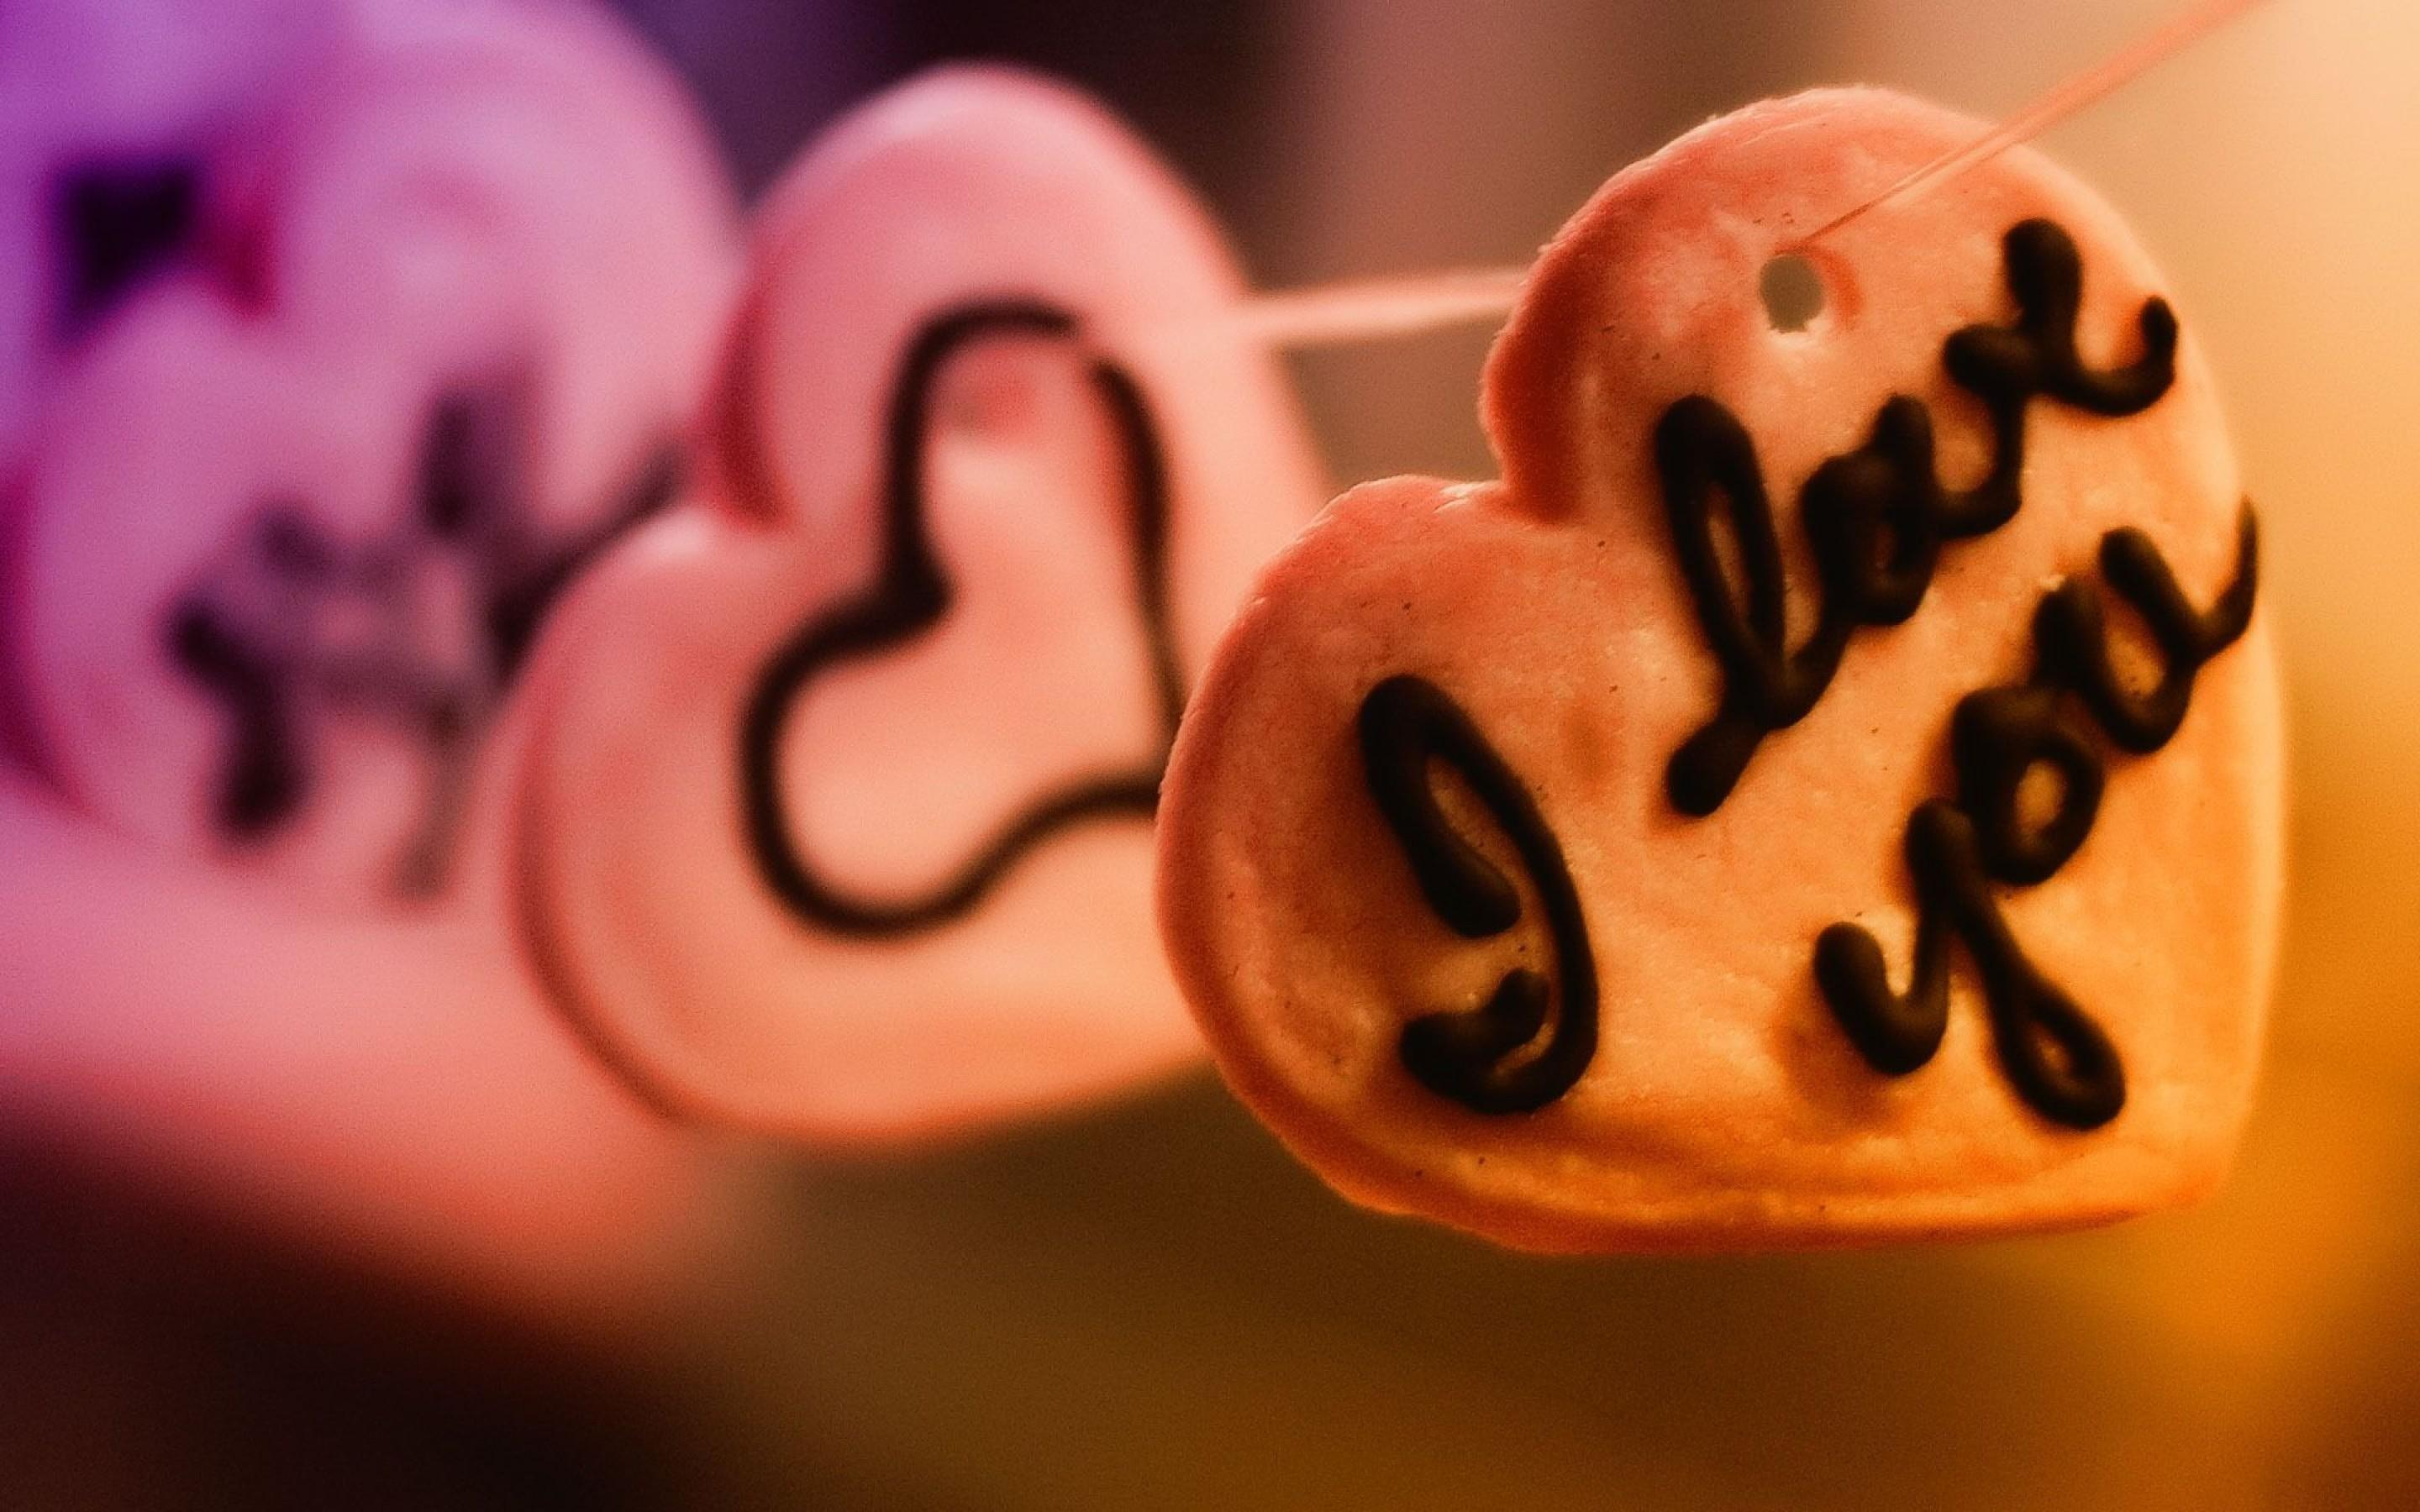 I Love You Wallpapers HD A23